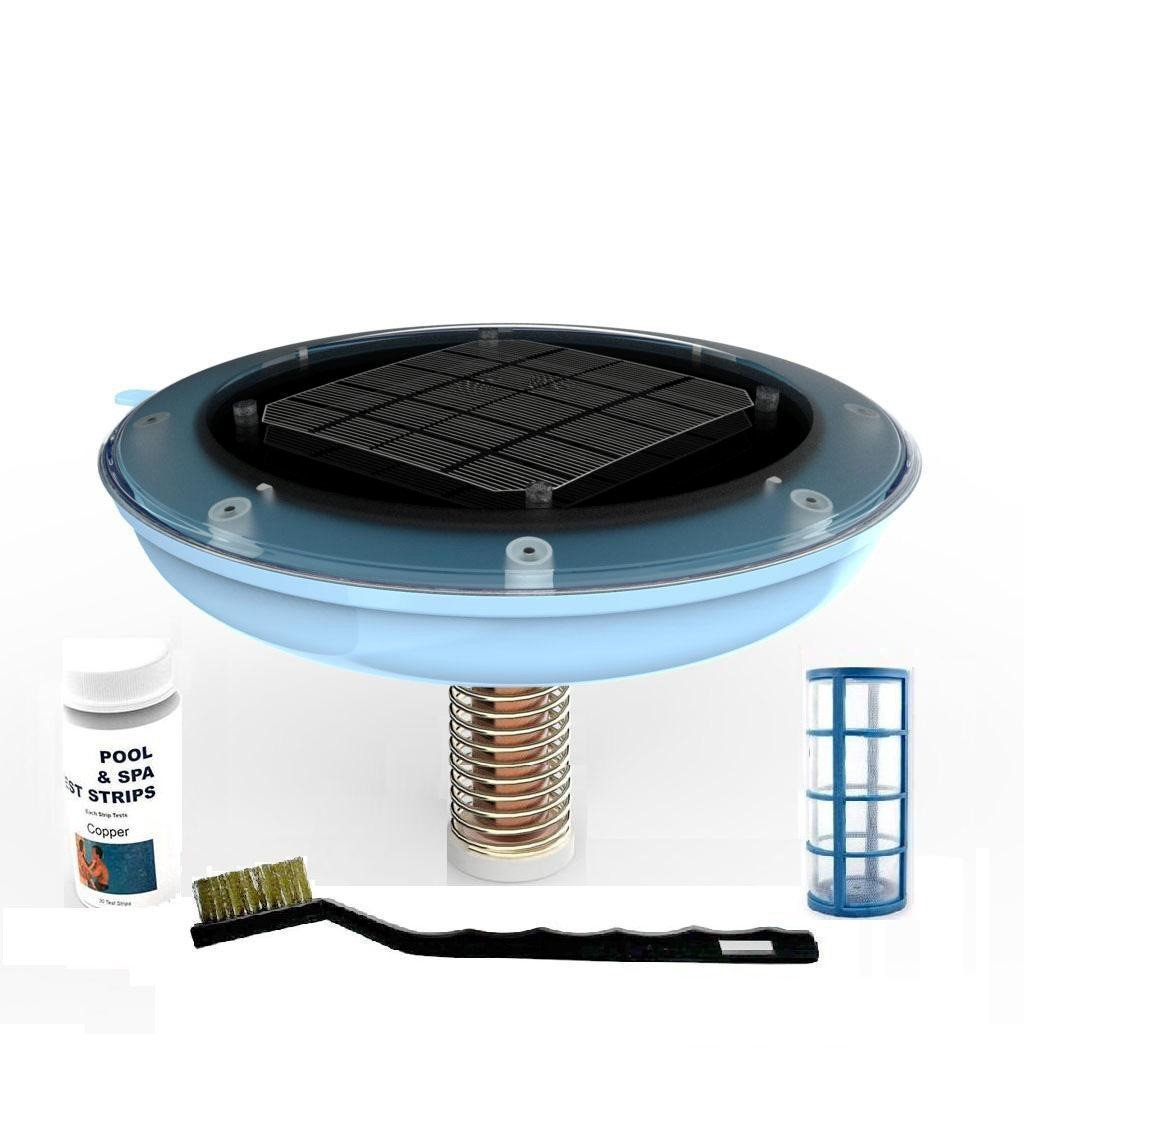 Peak Products Solar Pool Ionizer, Kills Algae Using 85% Less Chlorine, 100% Natural, Keeps Water Crystal Clear - Treats pools up to 35,000 Gallons And Includes Free Extra Copper Core